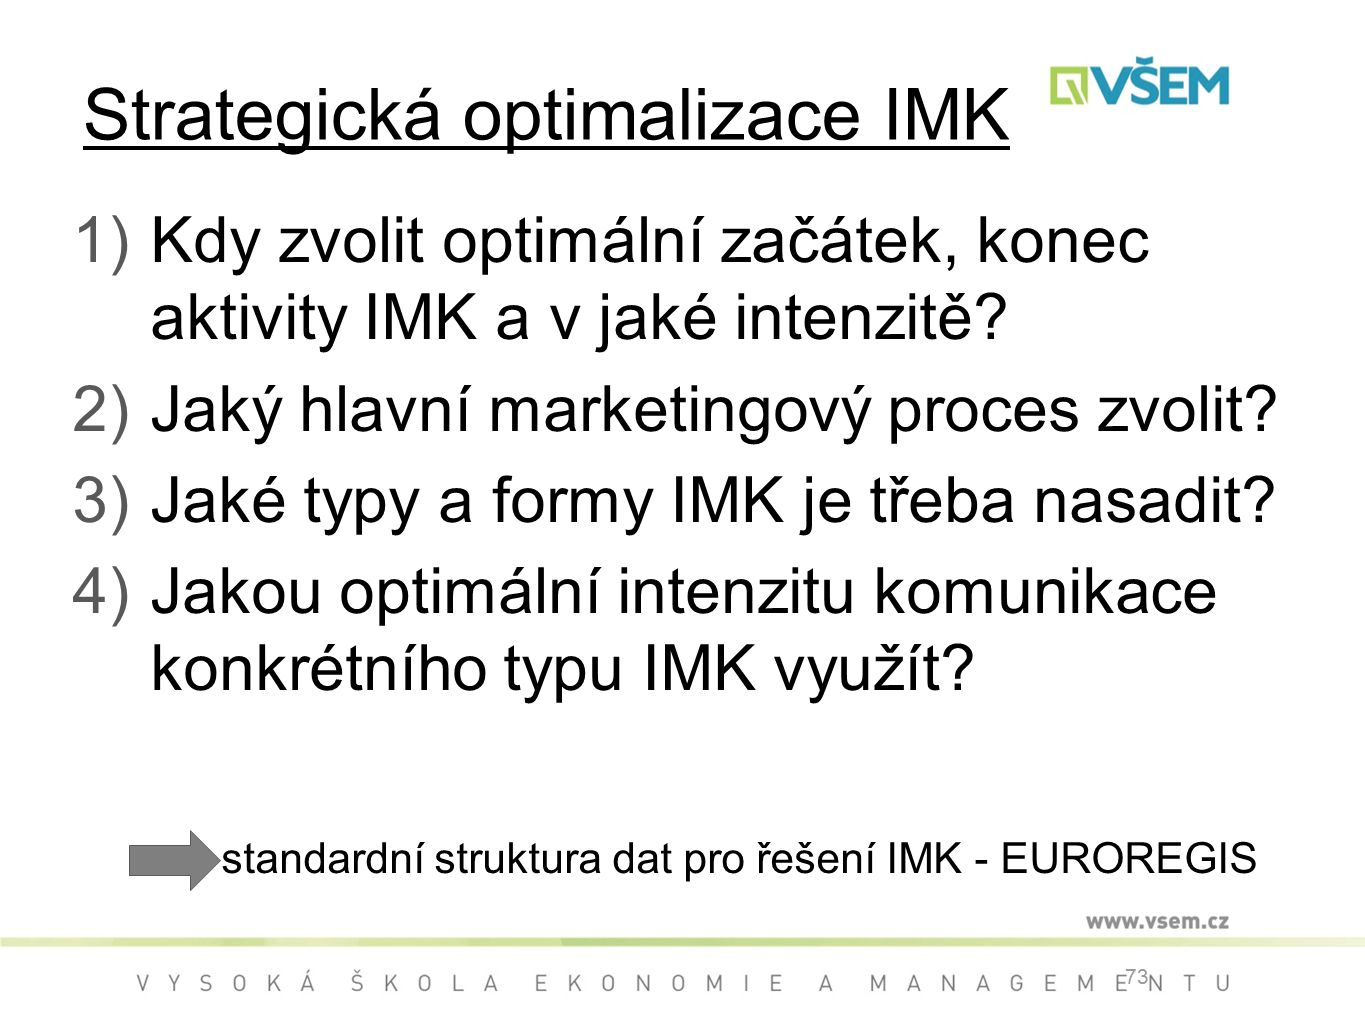 Strategická optimalizace IMK